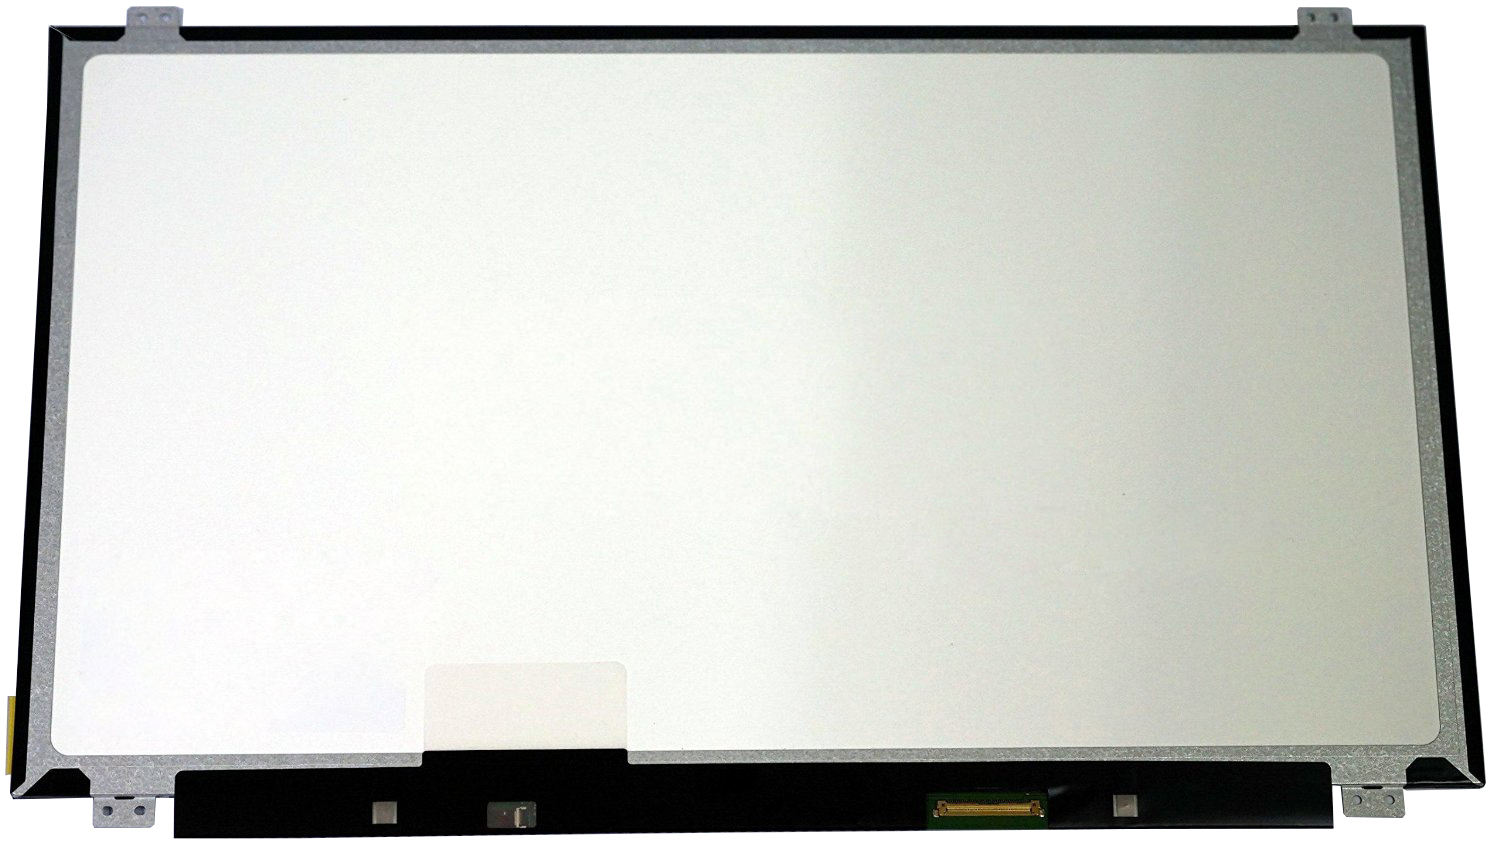 QuYing Laptop LCD Screen for Acer ASPIRE V5-123 SERIES (11.6 inch 1366x768 30pin Top and Bottom Brackets N) lussole loft подвесной светильник lussole loft hisoka lsp 9837